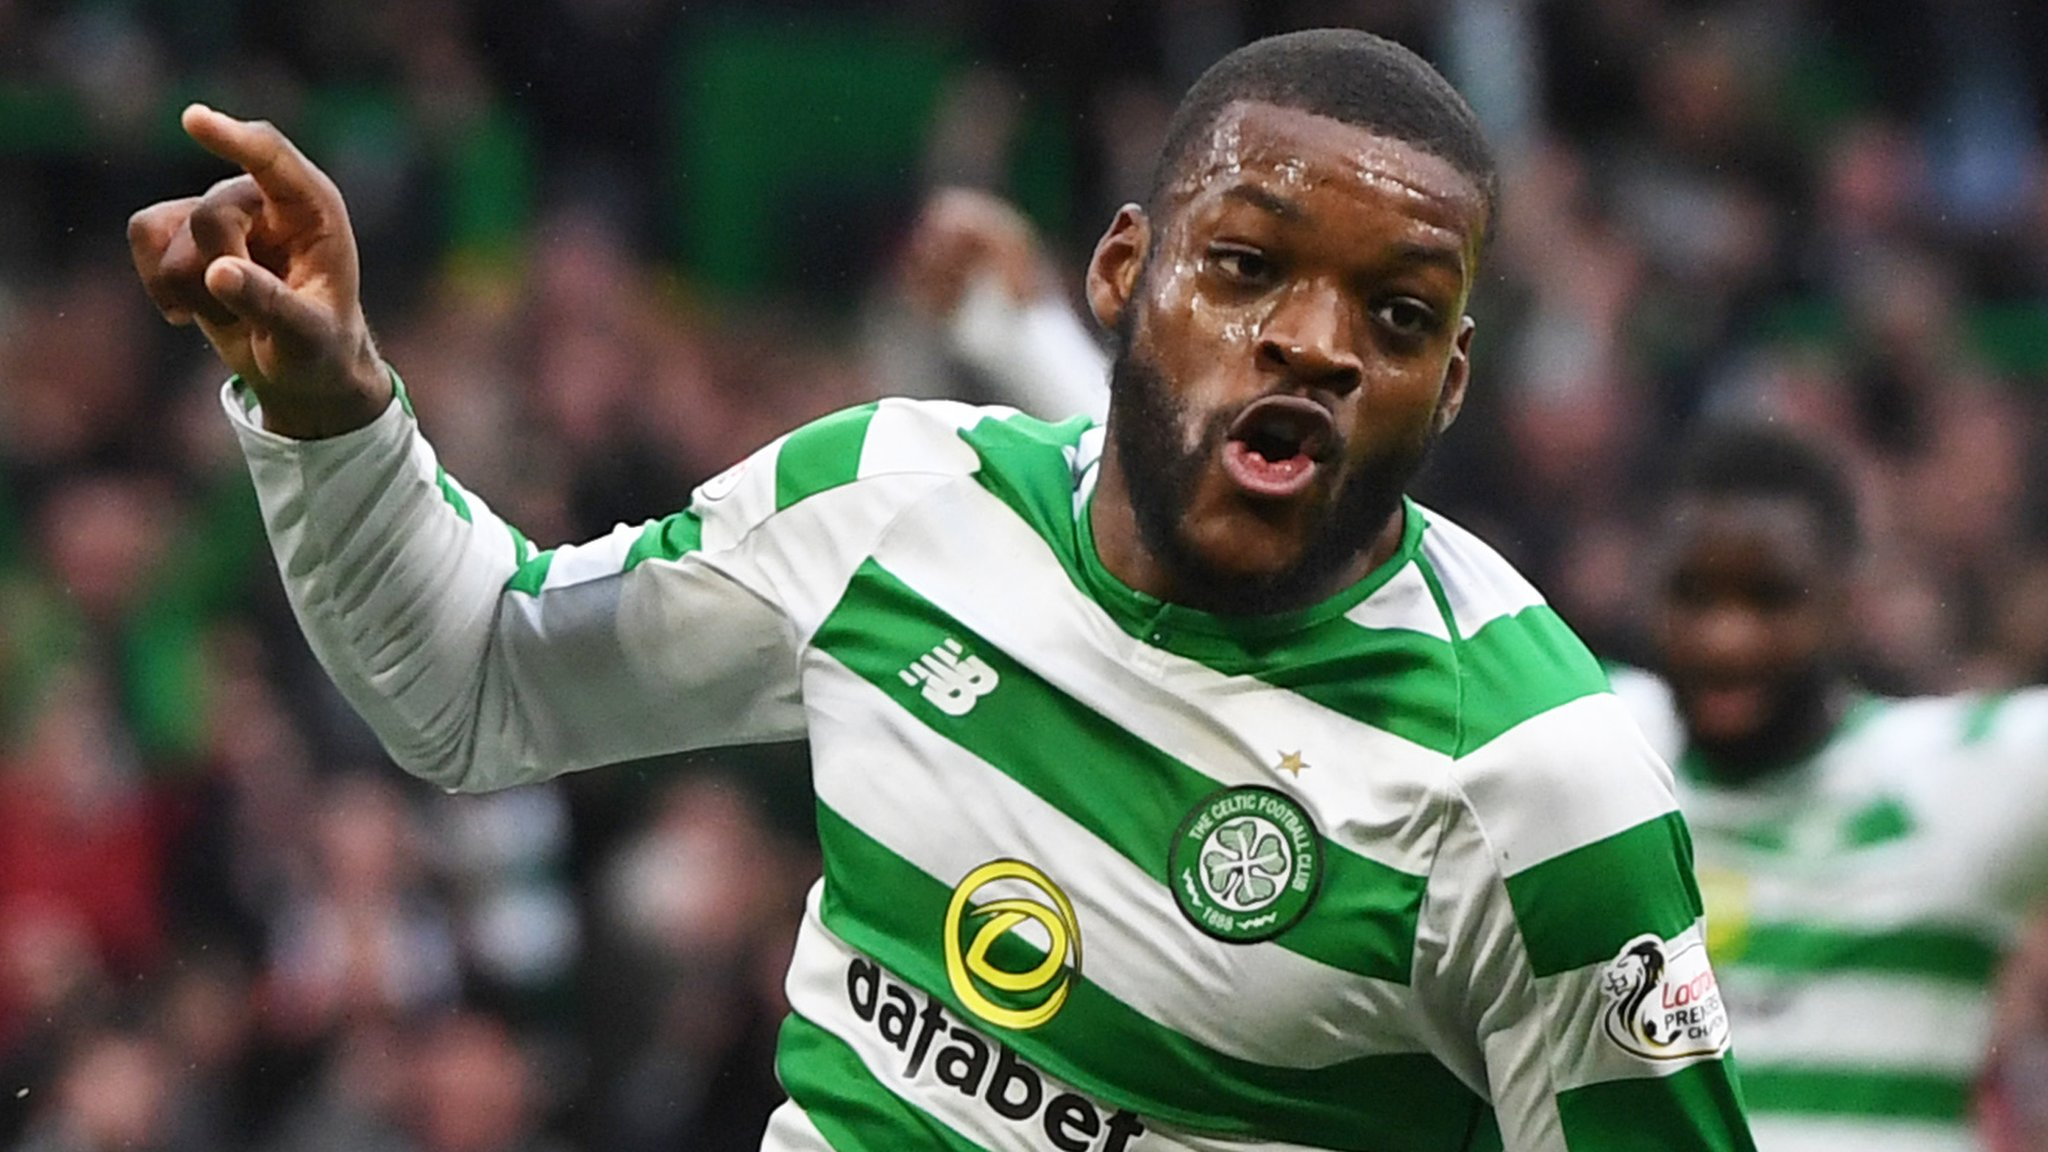 Celtic's Olivier Ntcham says he decided to sign new deal in the summer